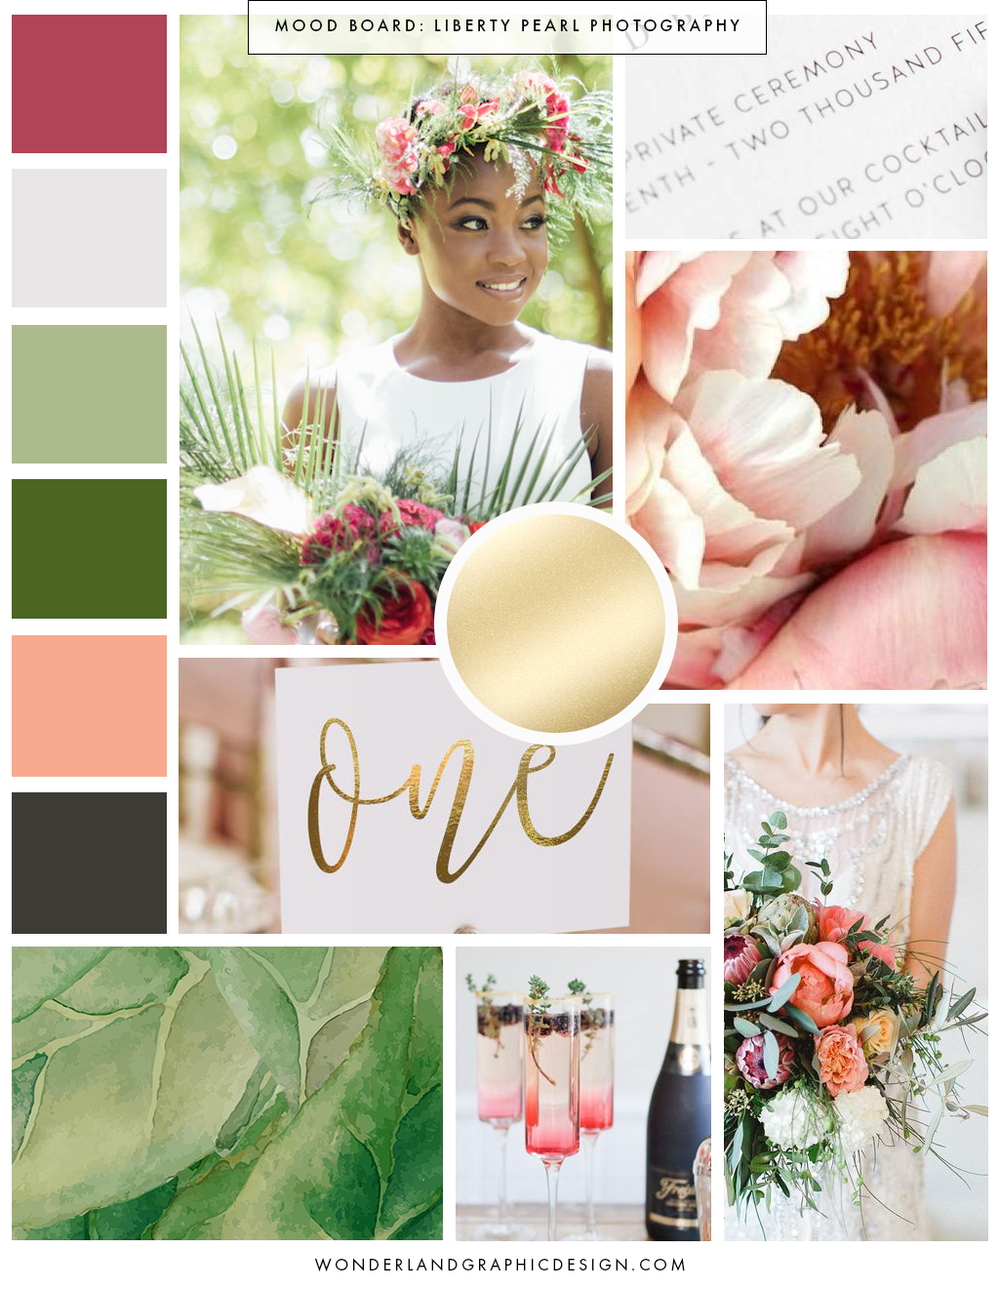 Mood Board for Liberty Pearl Photography. Inspiration board for the branding of wedding photography online business, bright exotic luxury colors, script and serif fonts and typography, feminine, pretty brand design, social media branding and printed materials and packaging. Branding for female entrepreneurs and small business owners from Wonderland Graphic Design.